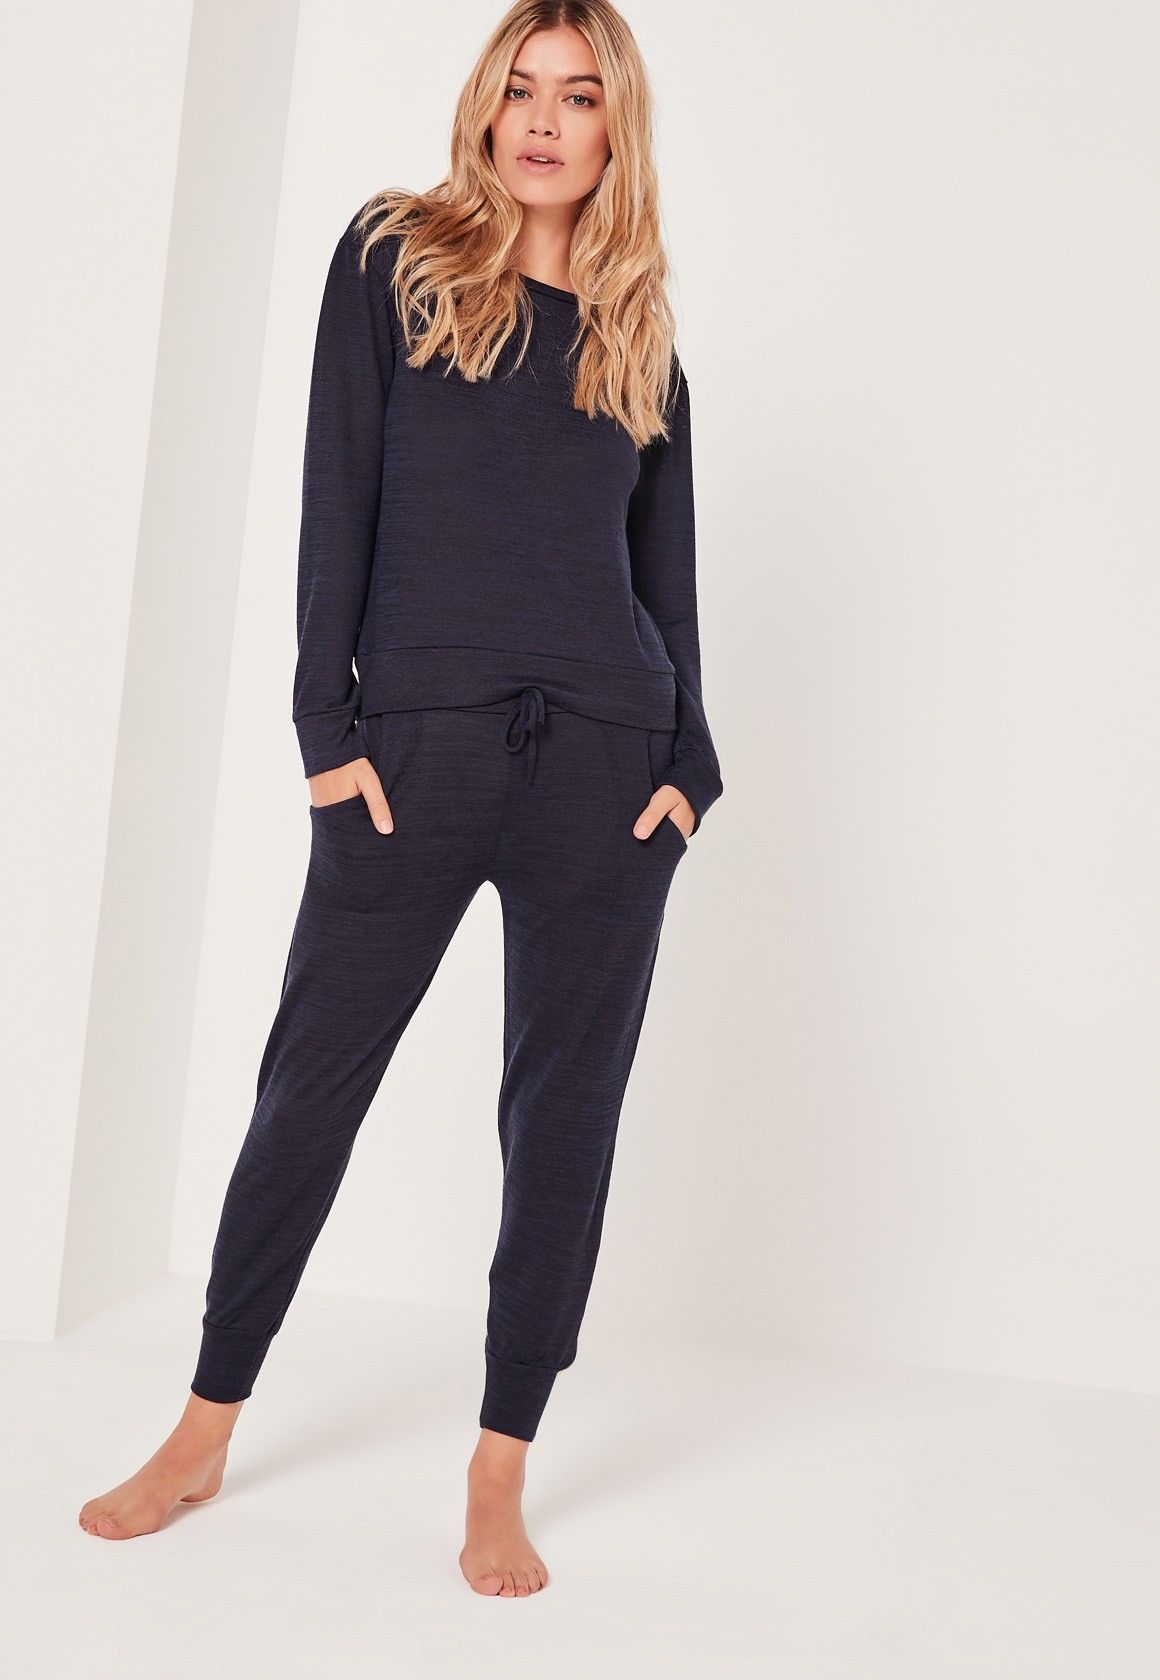 How to tracksuit wear pants images